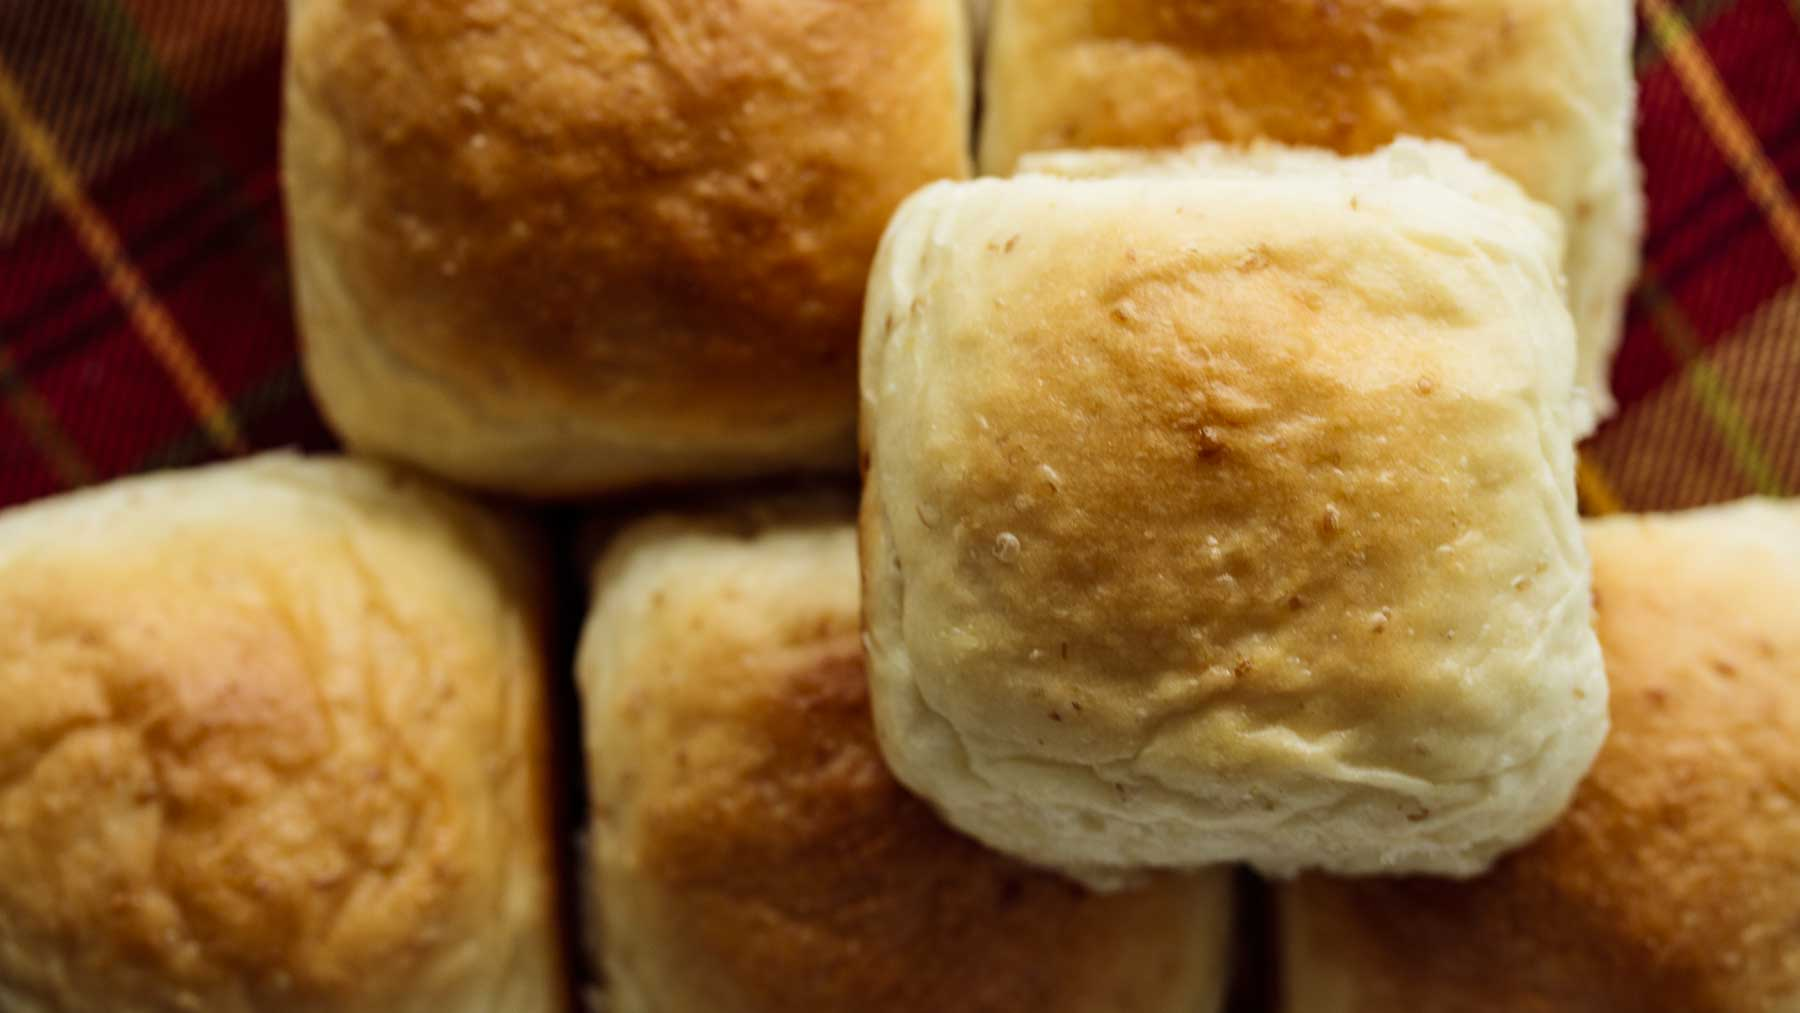 Dinner rolls seen from above, showing its soft crust.